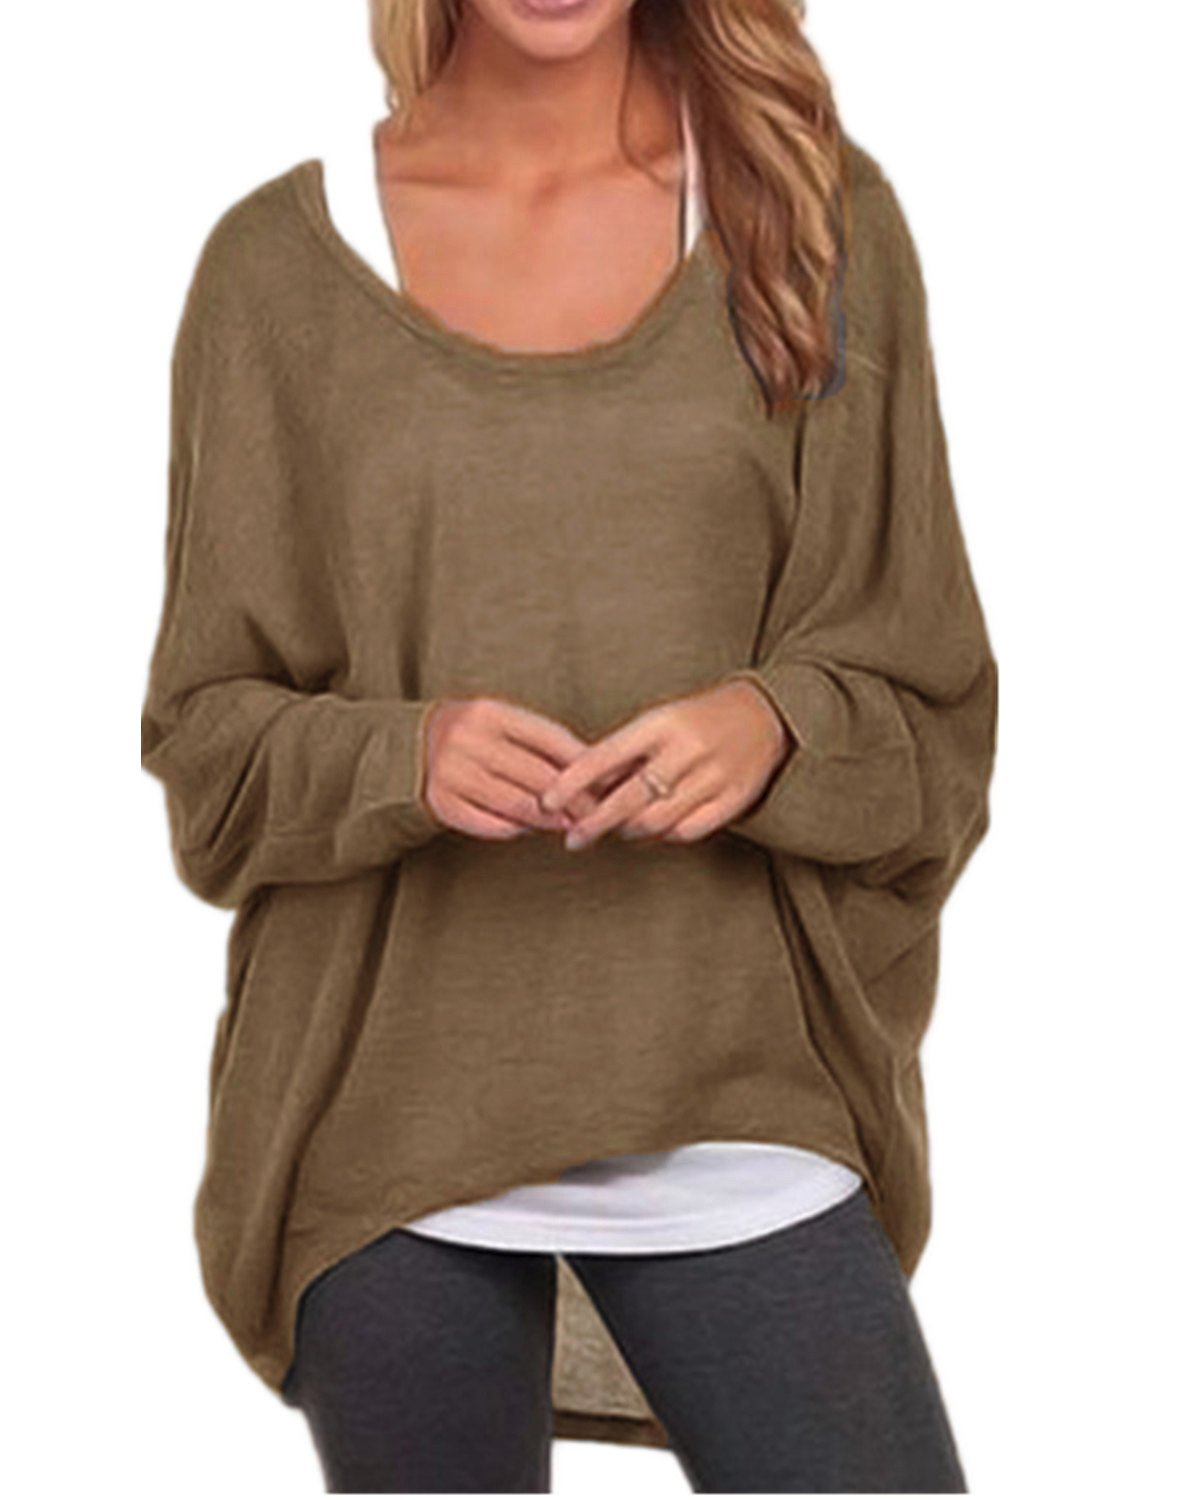 ZANZEA Women's Long Batwing Sleeve Loose Oversize Pullover Sweater Top Blouse Brown US 12/Tag Size XL